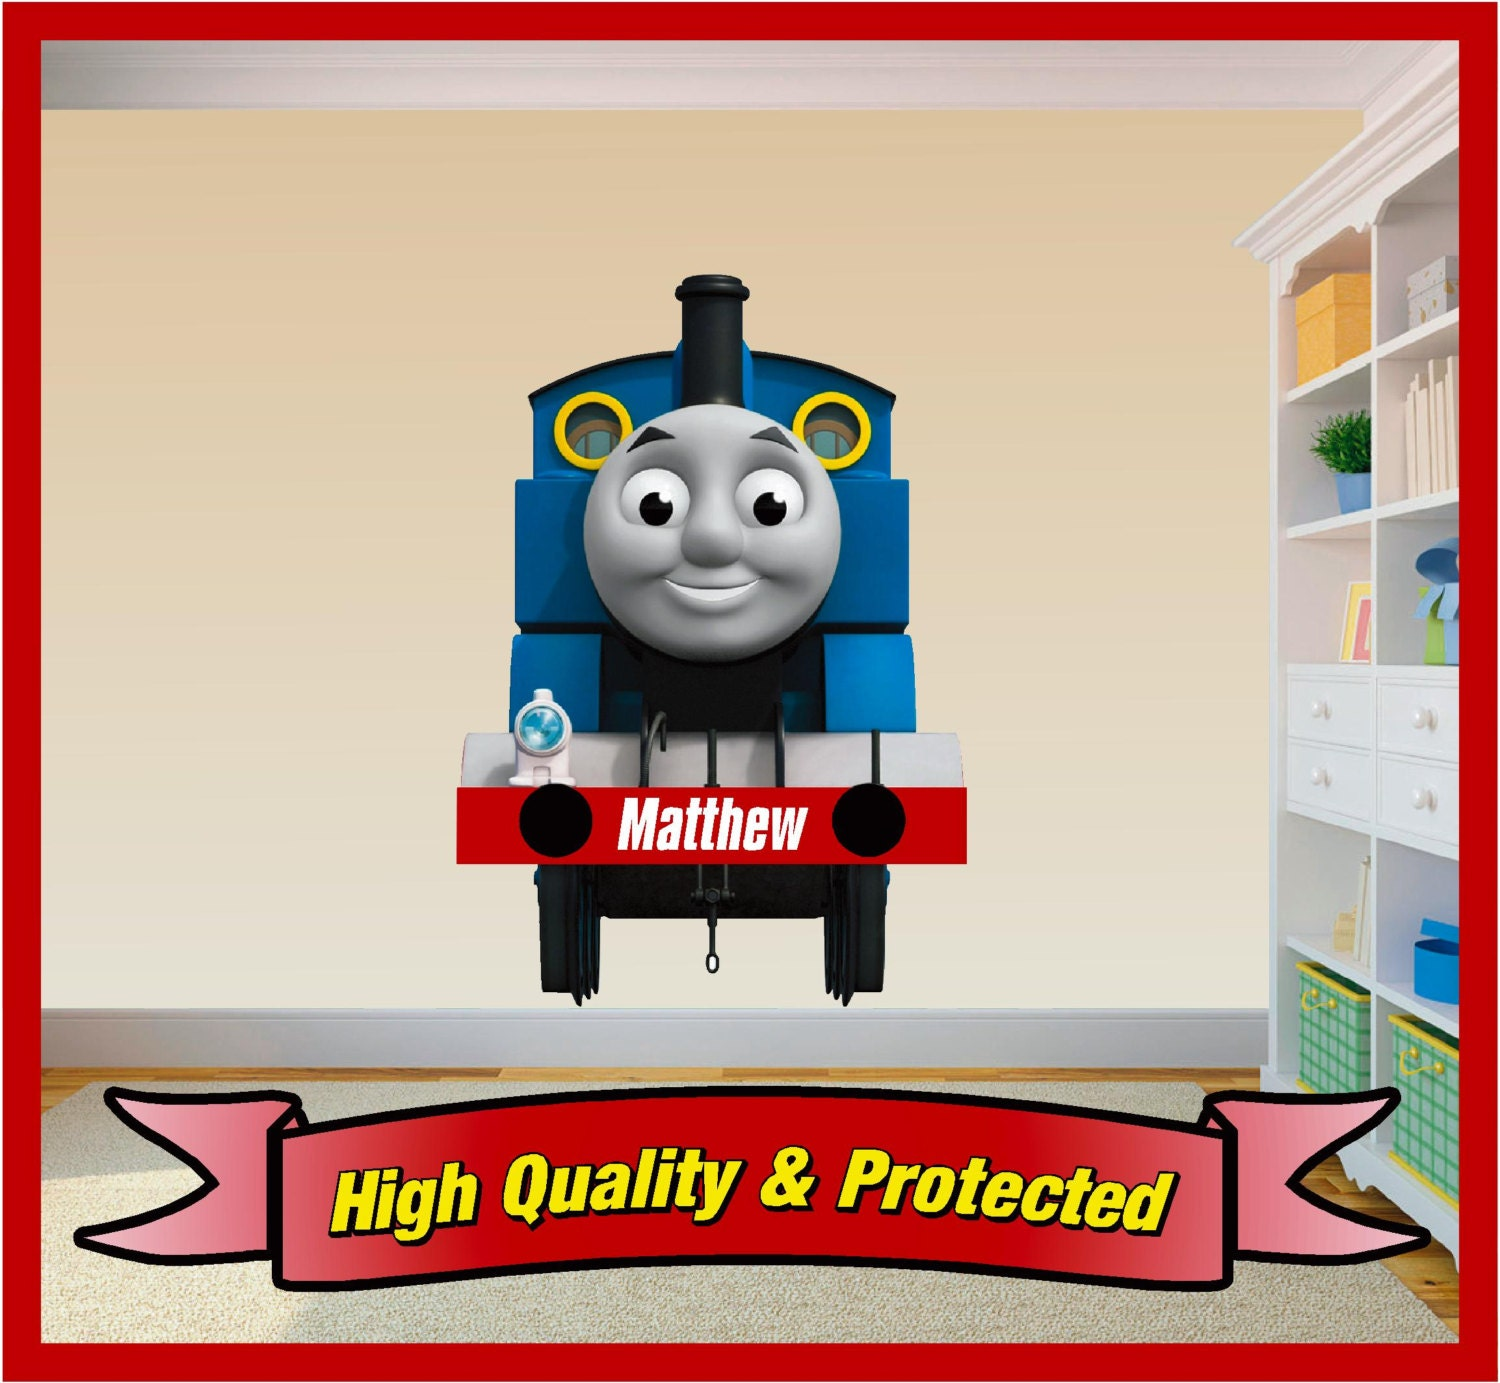 thomas the tank engine personalised wall art sticker decal. Black Bedroom Furniture Sets. Home Design Ideas